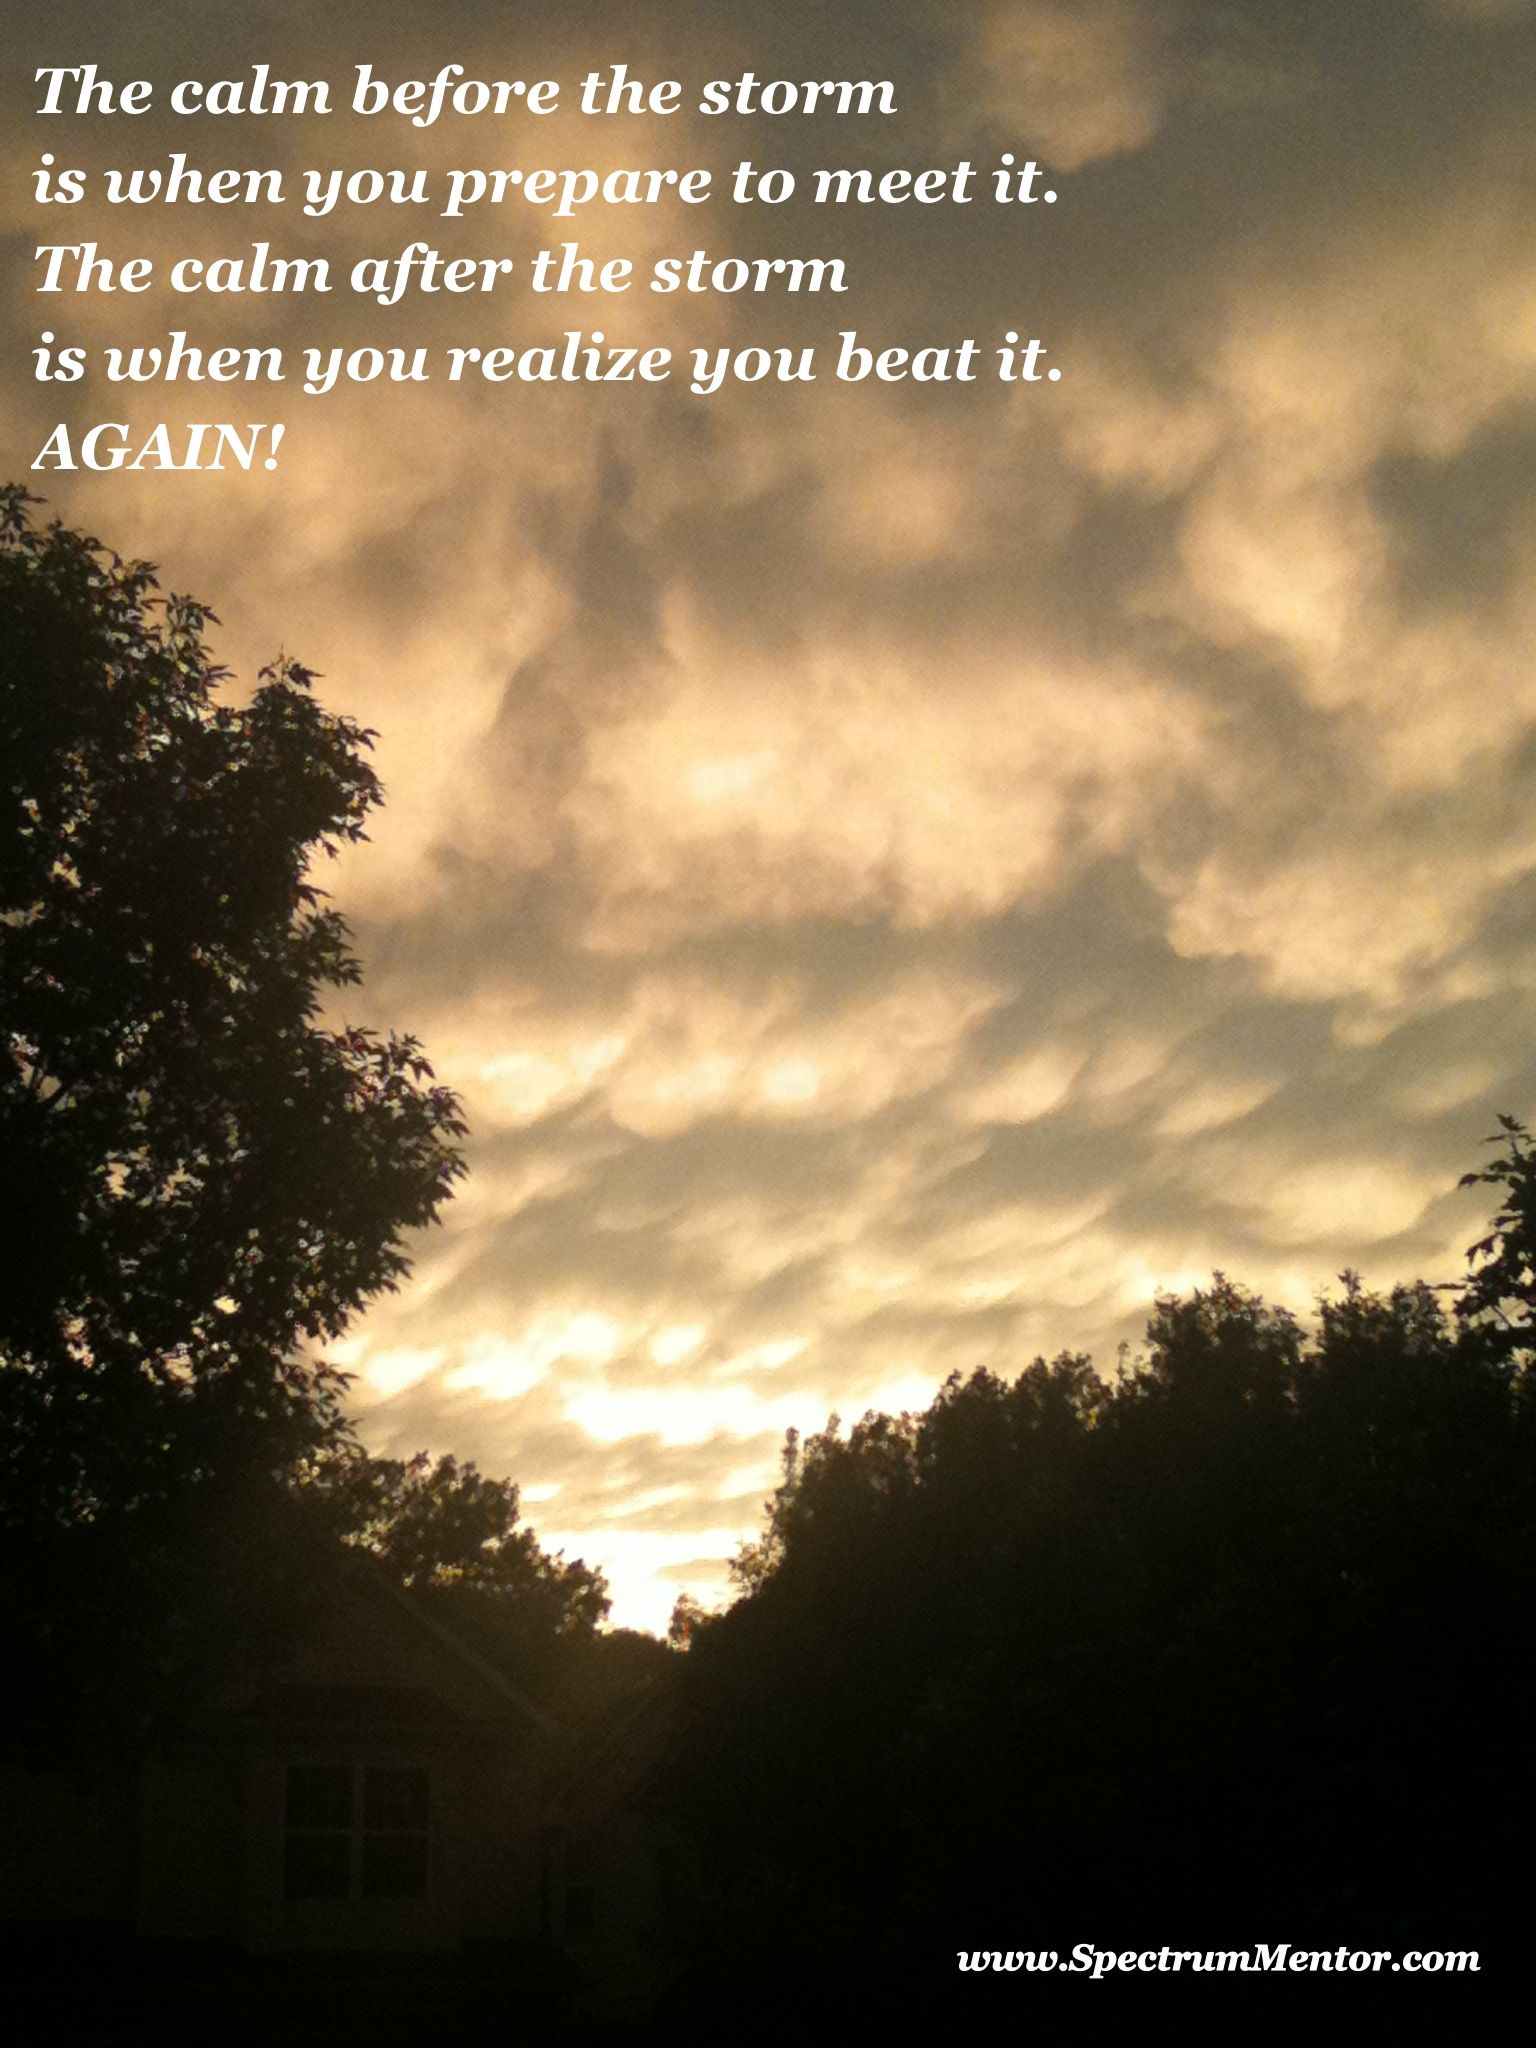 The calm after the storm . . . | Storm quotes, Calm after ...